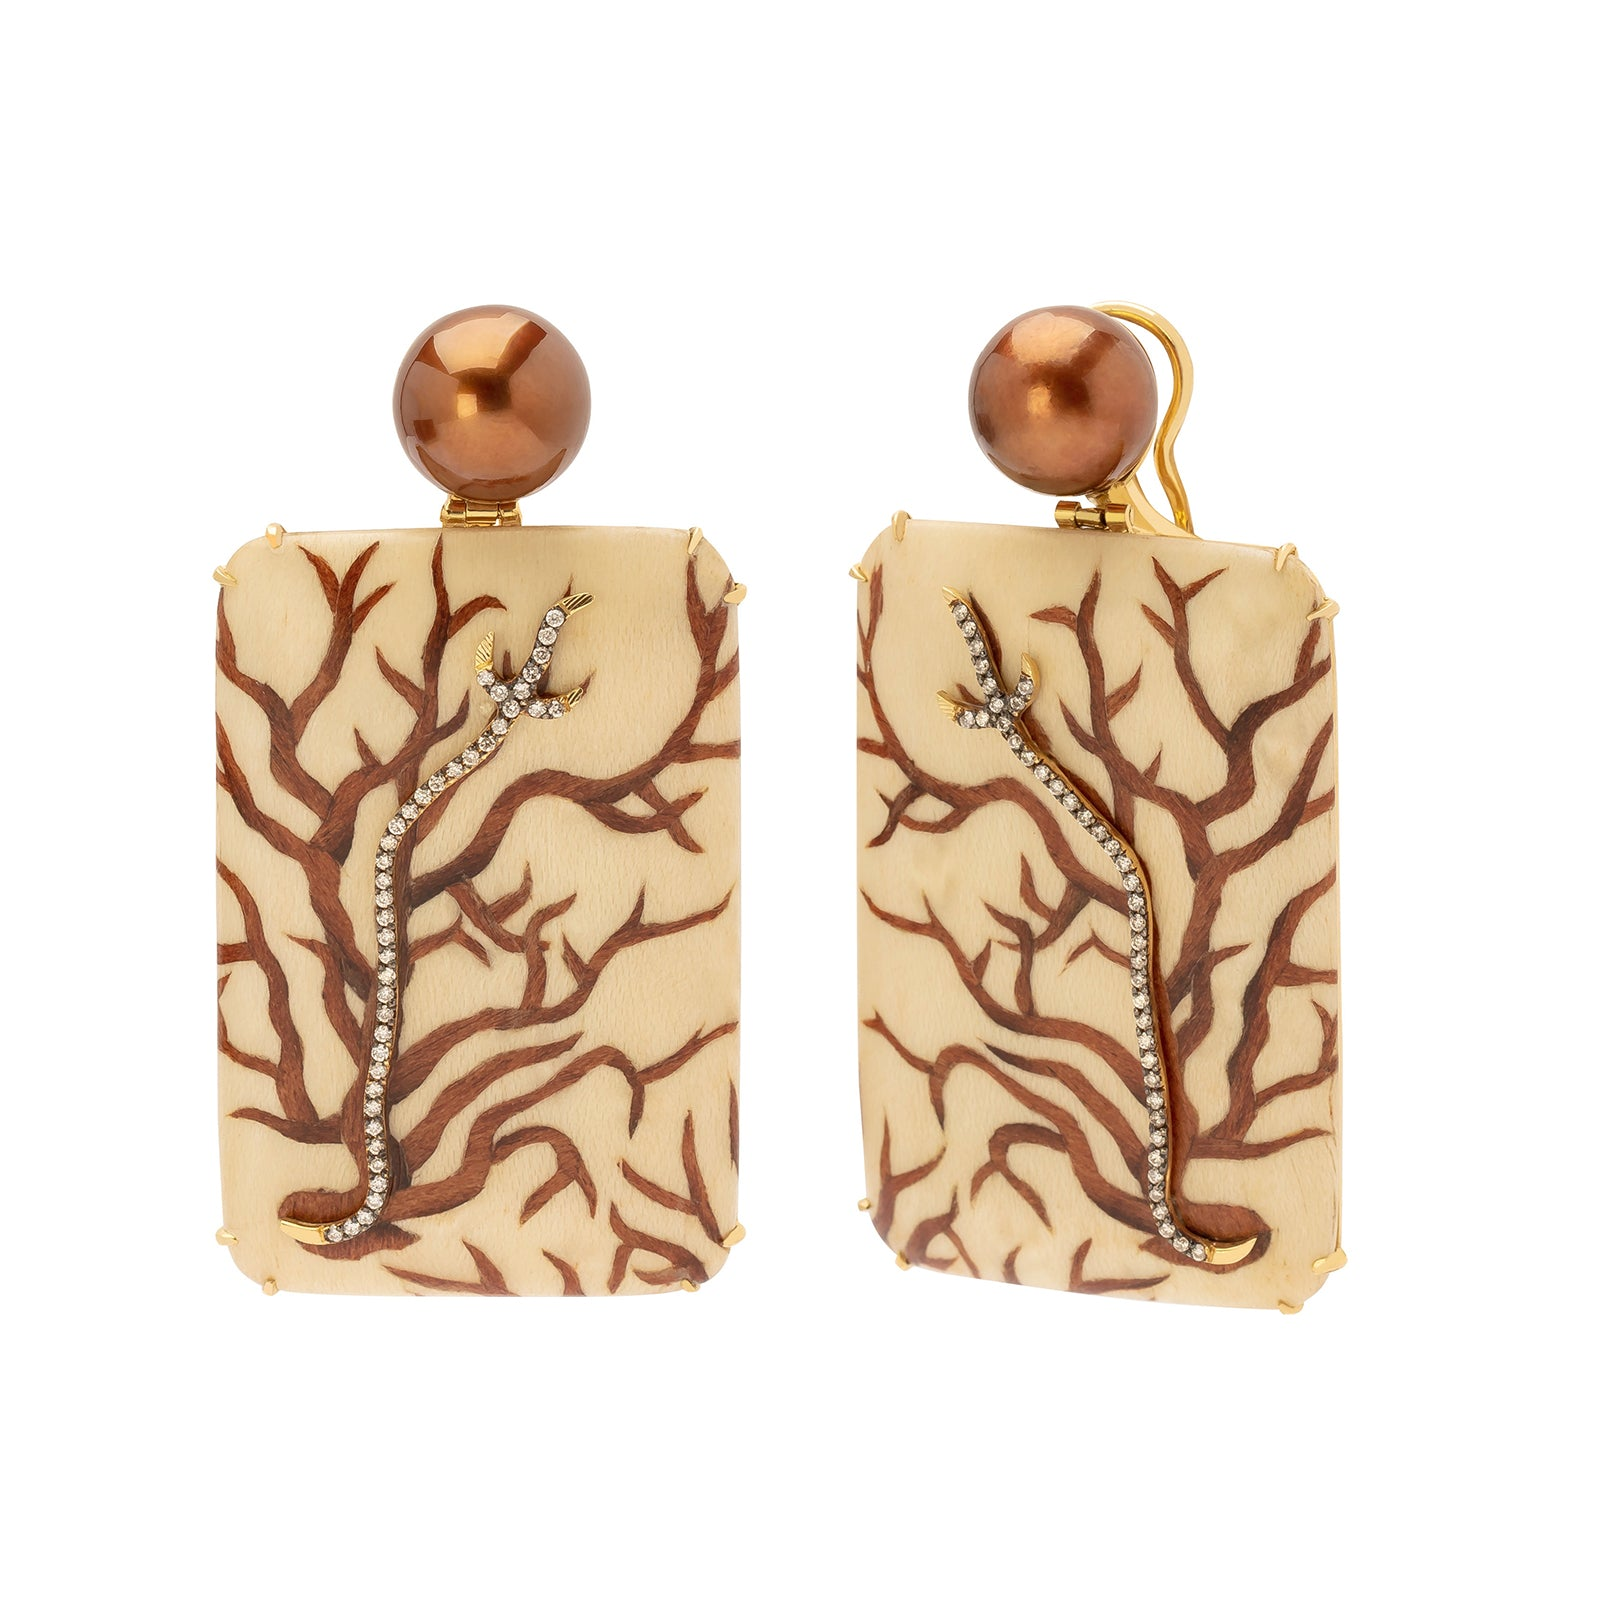 Silvia Furmanovich Marquetry Coral Earrings - Earrings - Broken English Jewelry